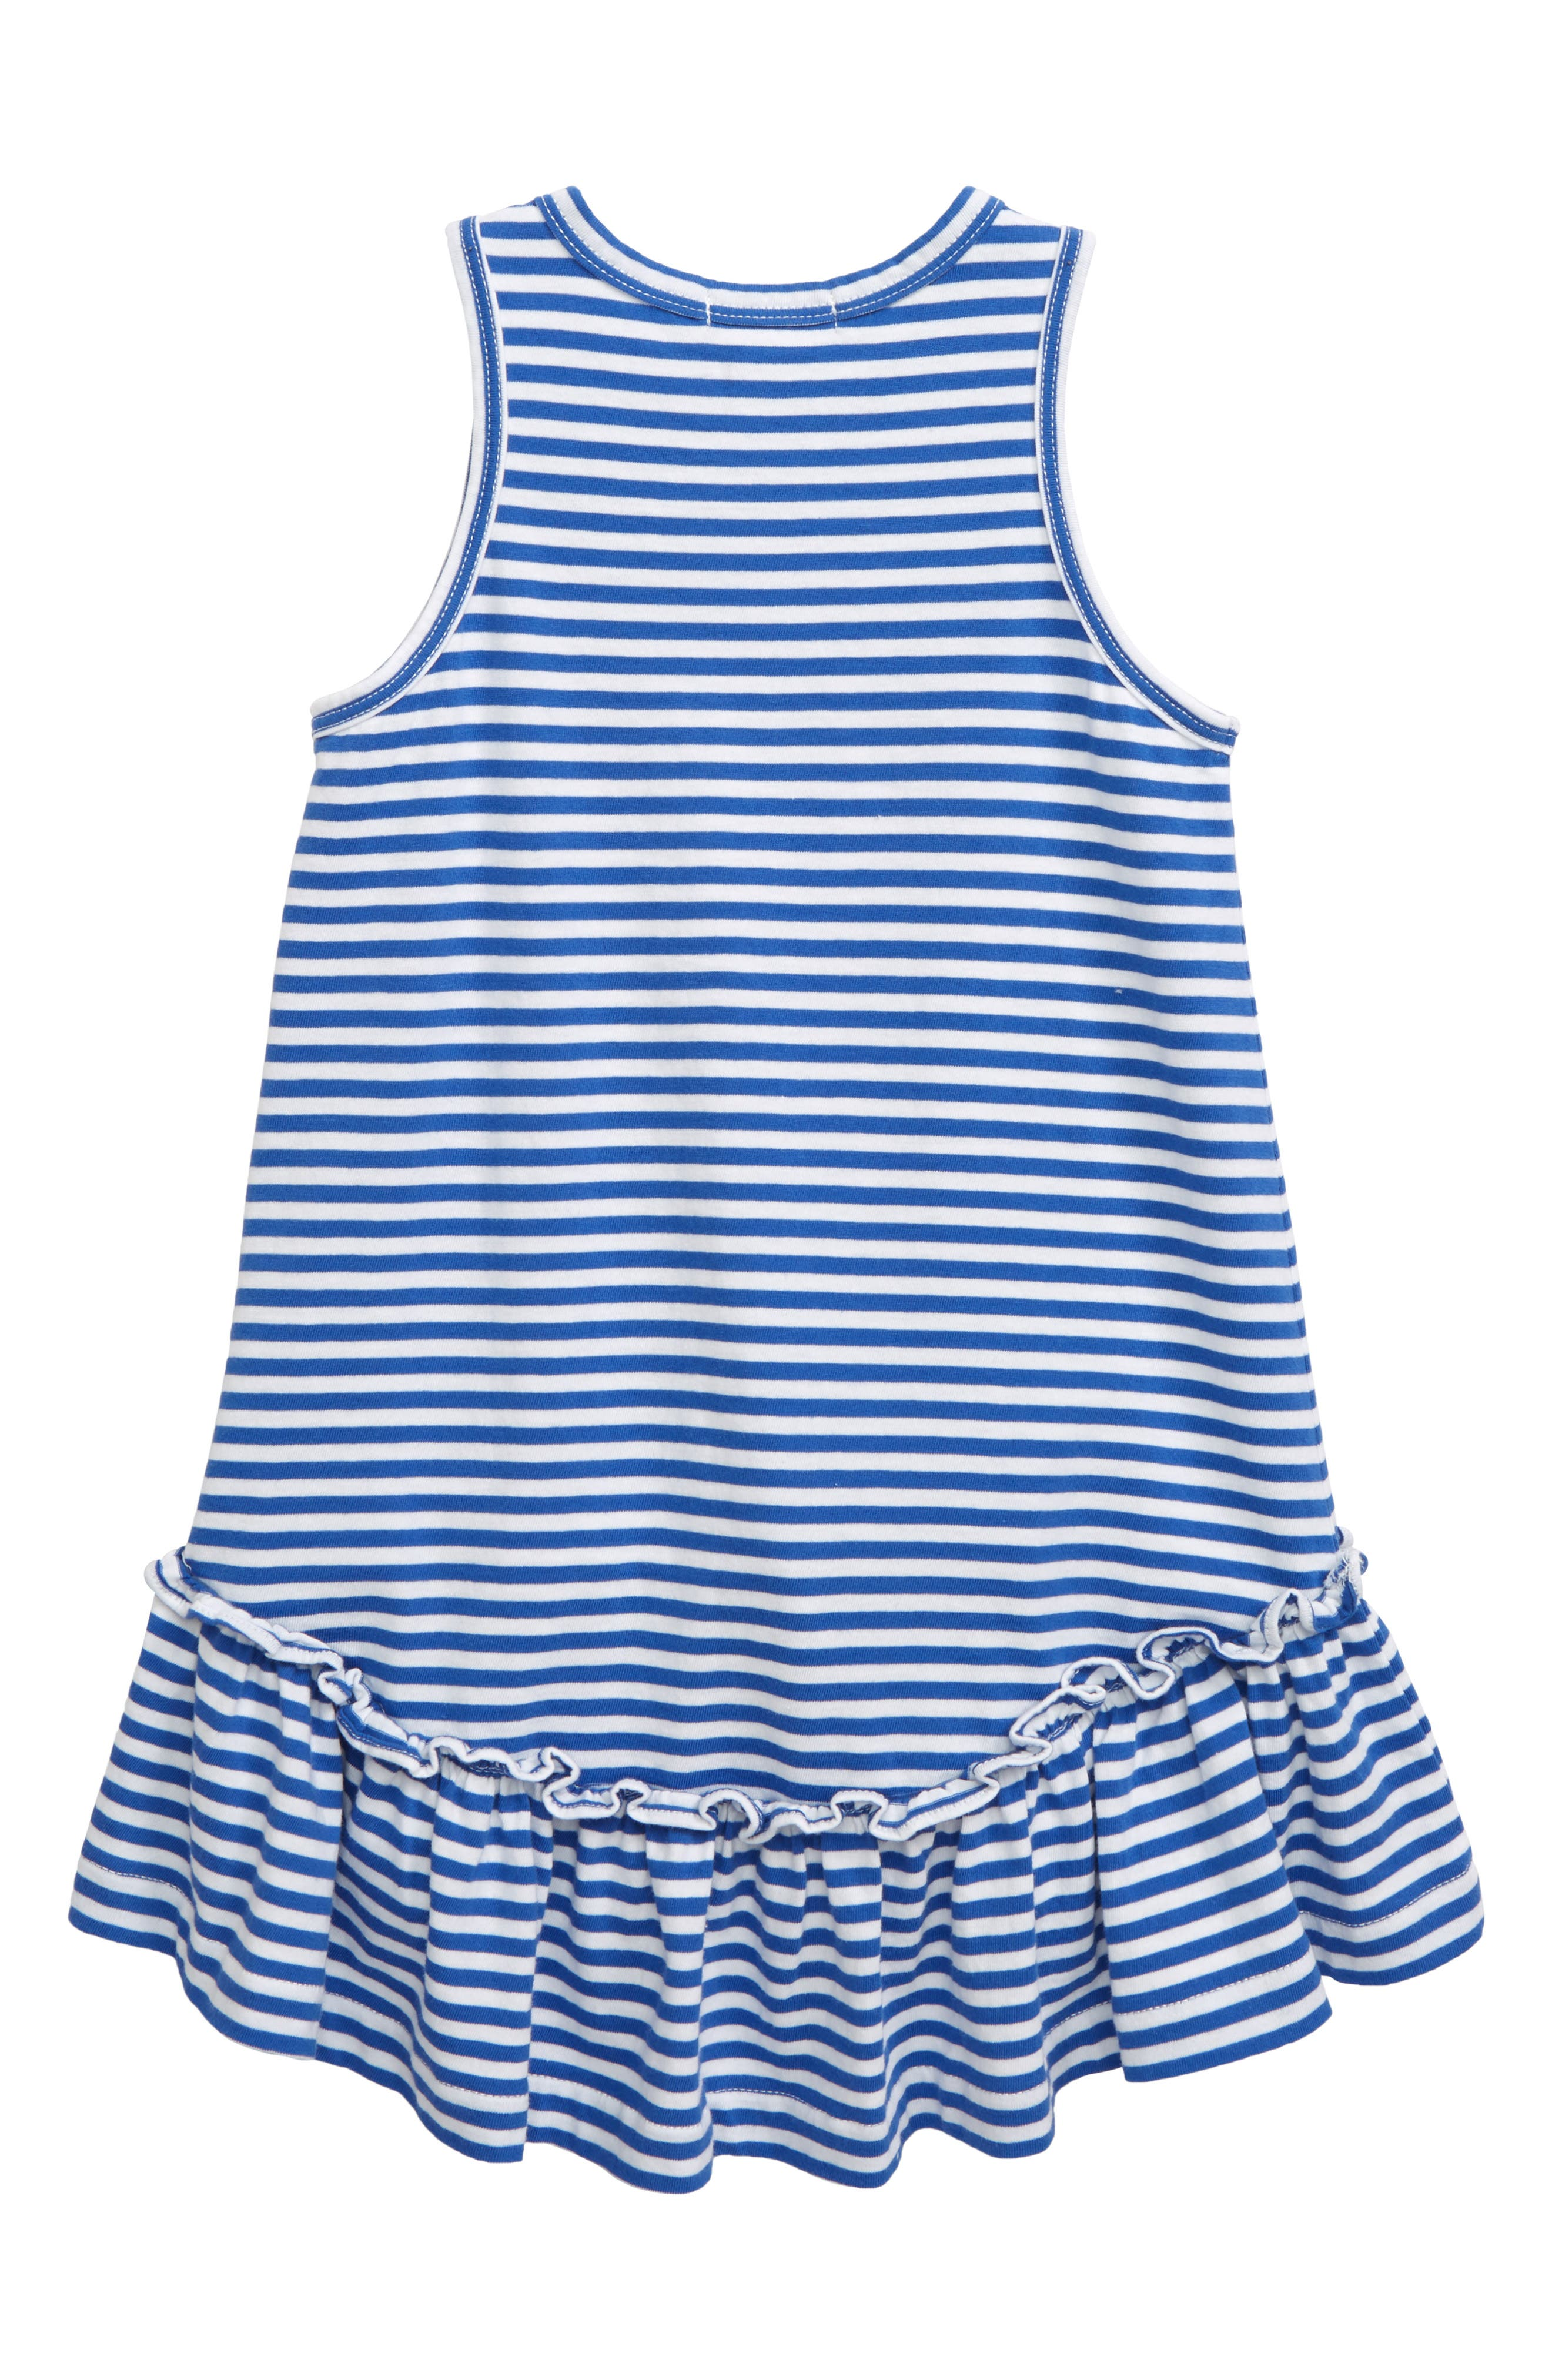 5303ec34f64 crewcuts clothing by J. Crew for Kids Dresses